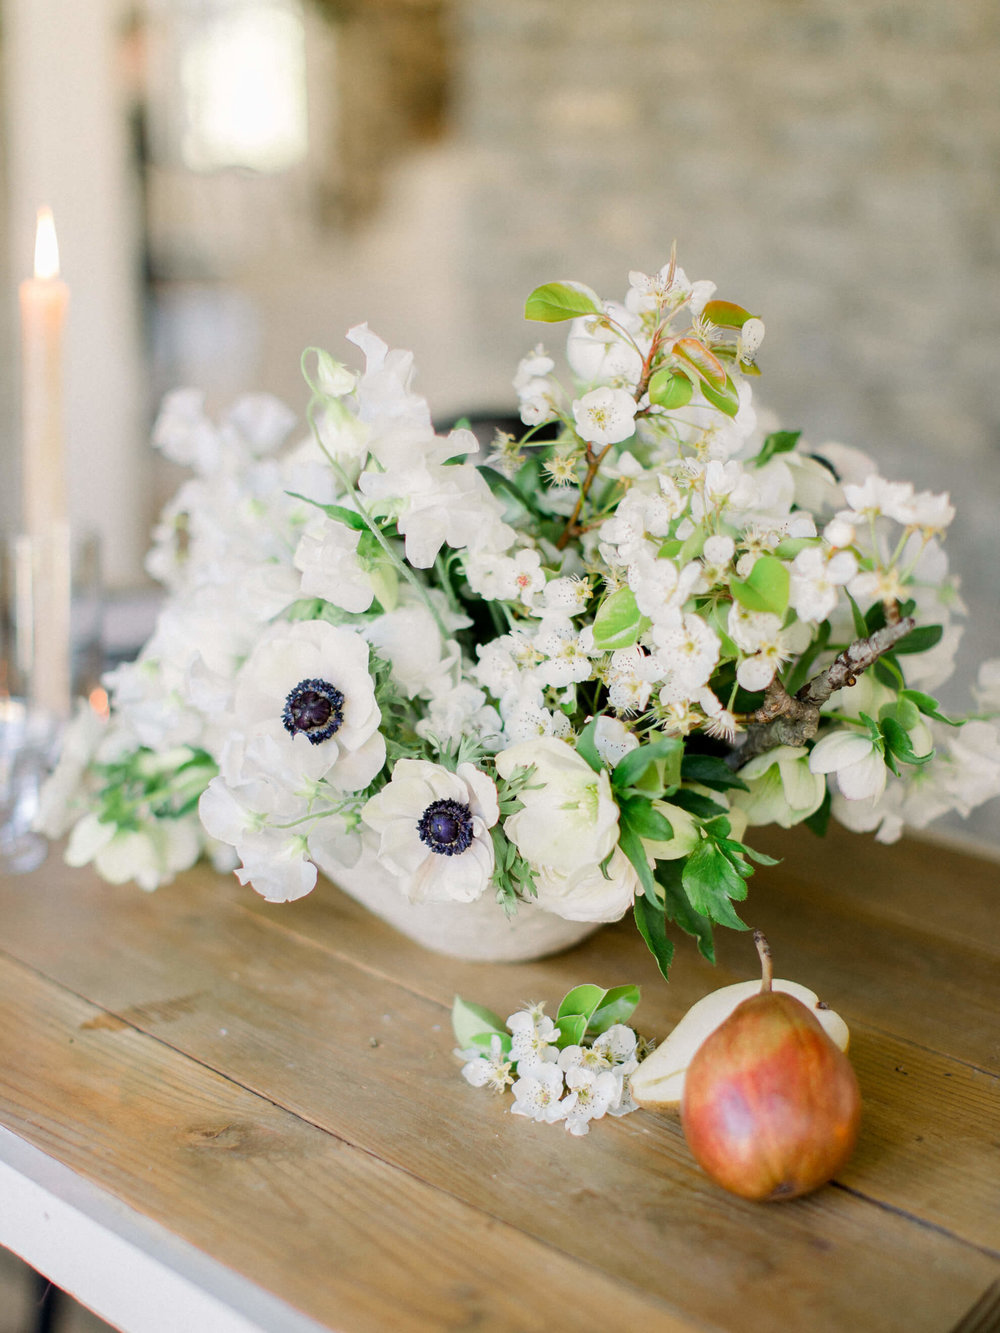 Do you offer local deliveries of flowers or plants?  - At this time, we do not. We do however offer event flowers for small events and floral workshops in addition to our event services.